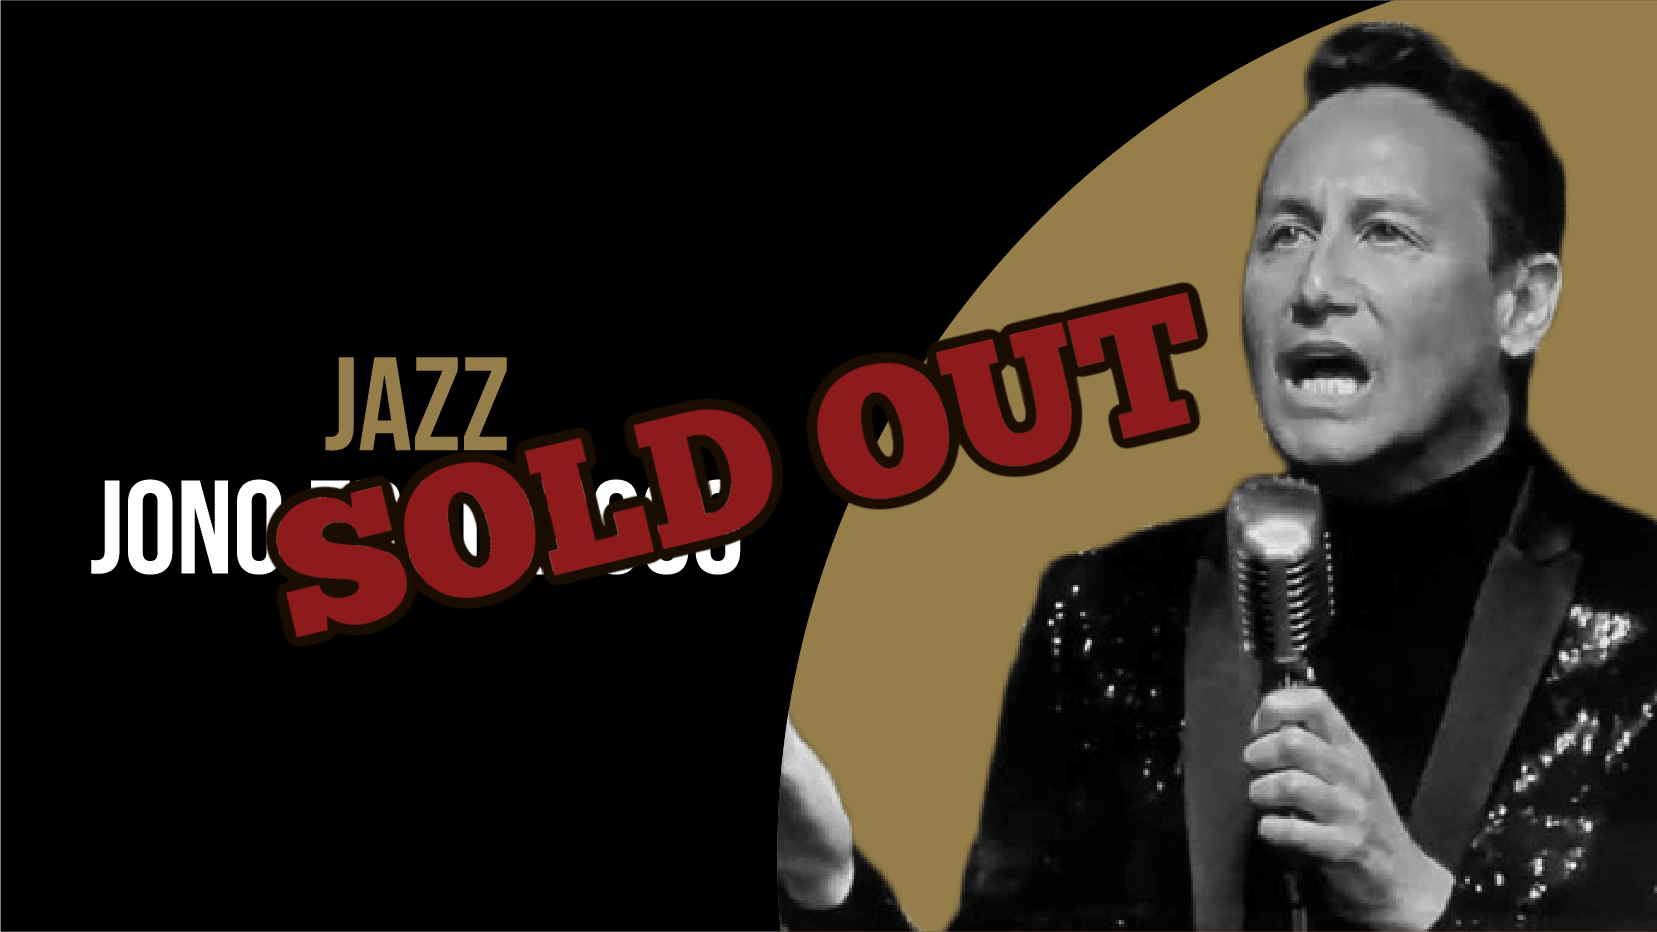 Wed 28 Apr Sold Out